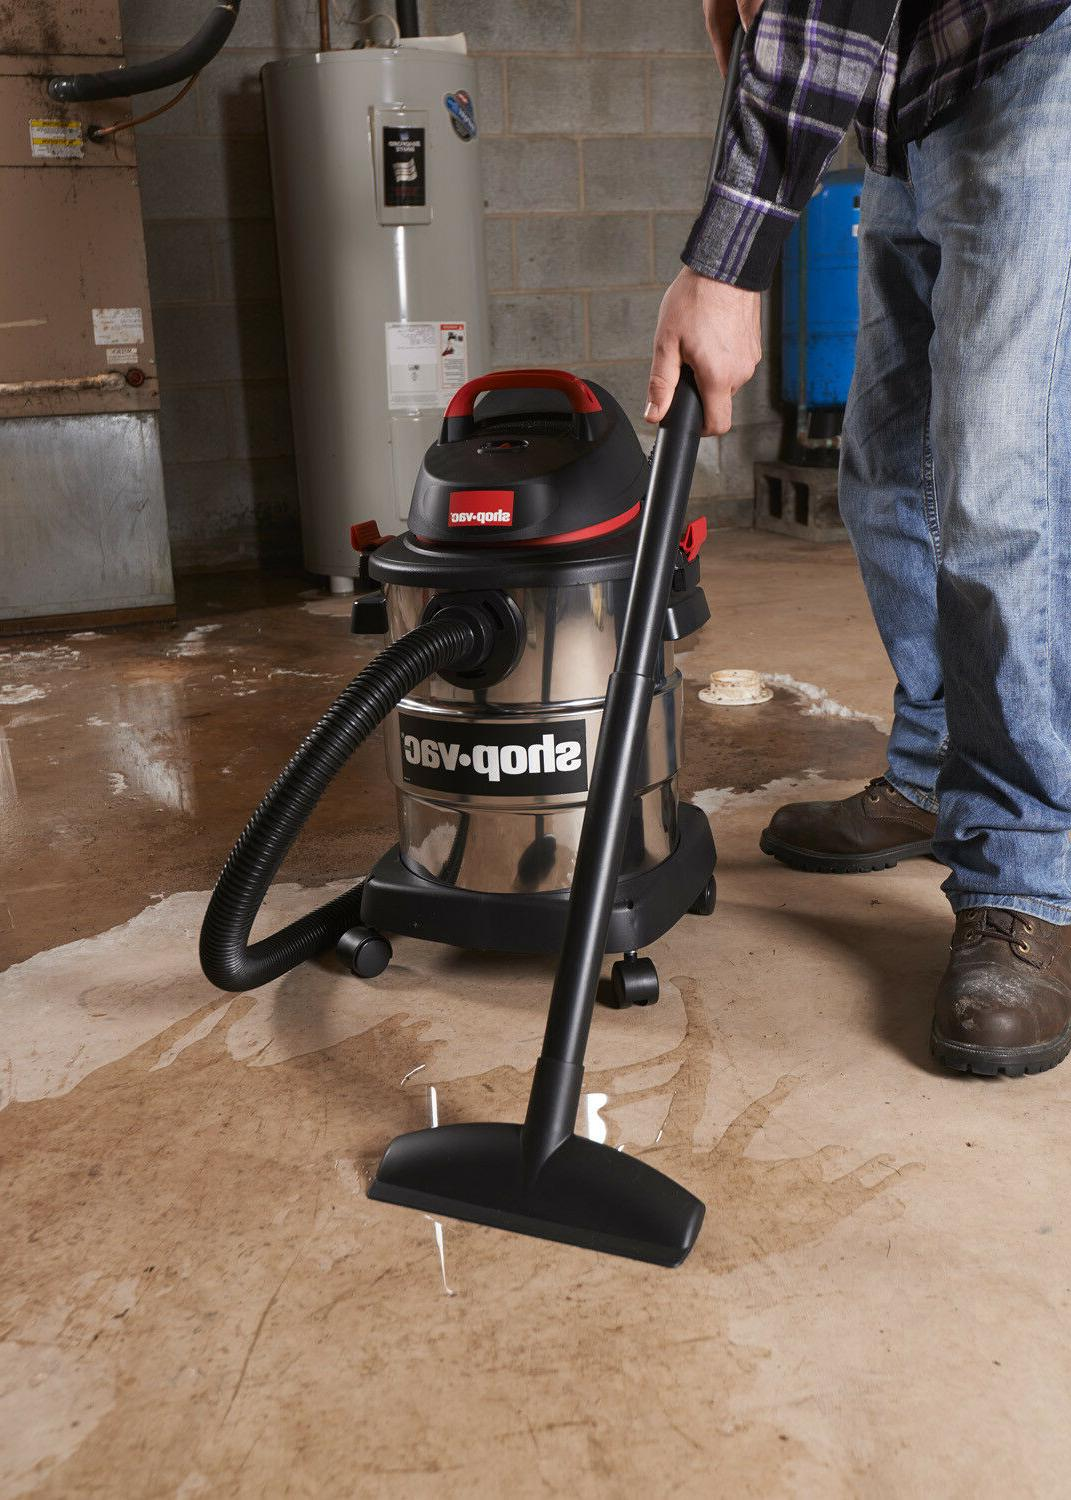 Shop-Vac Stainless Steel Wet Cleaner